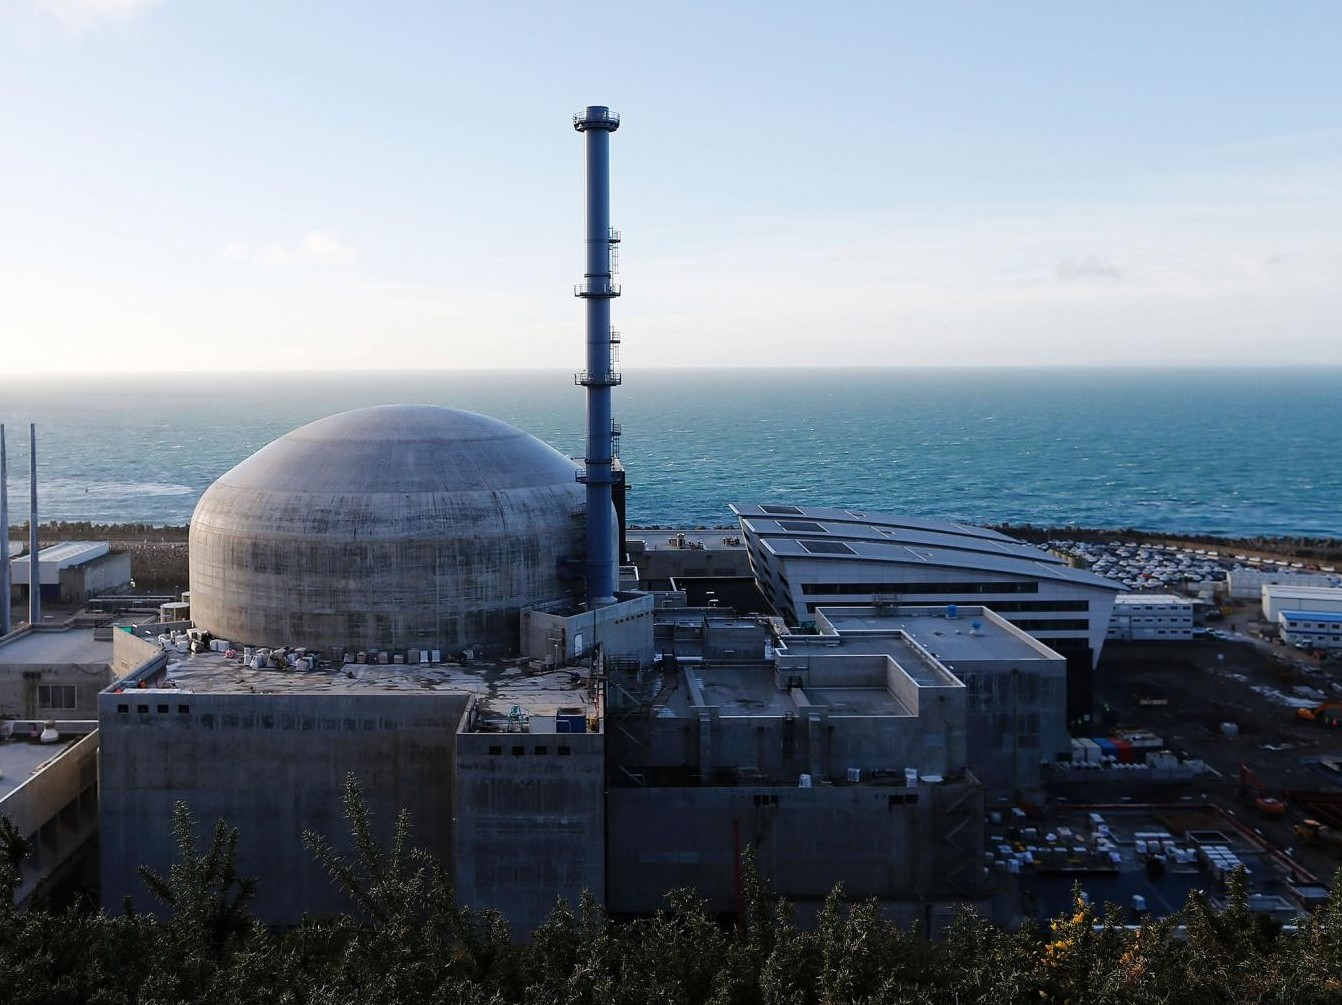 Centrale nucleare di Flamanville, Francia: l'incidente